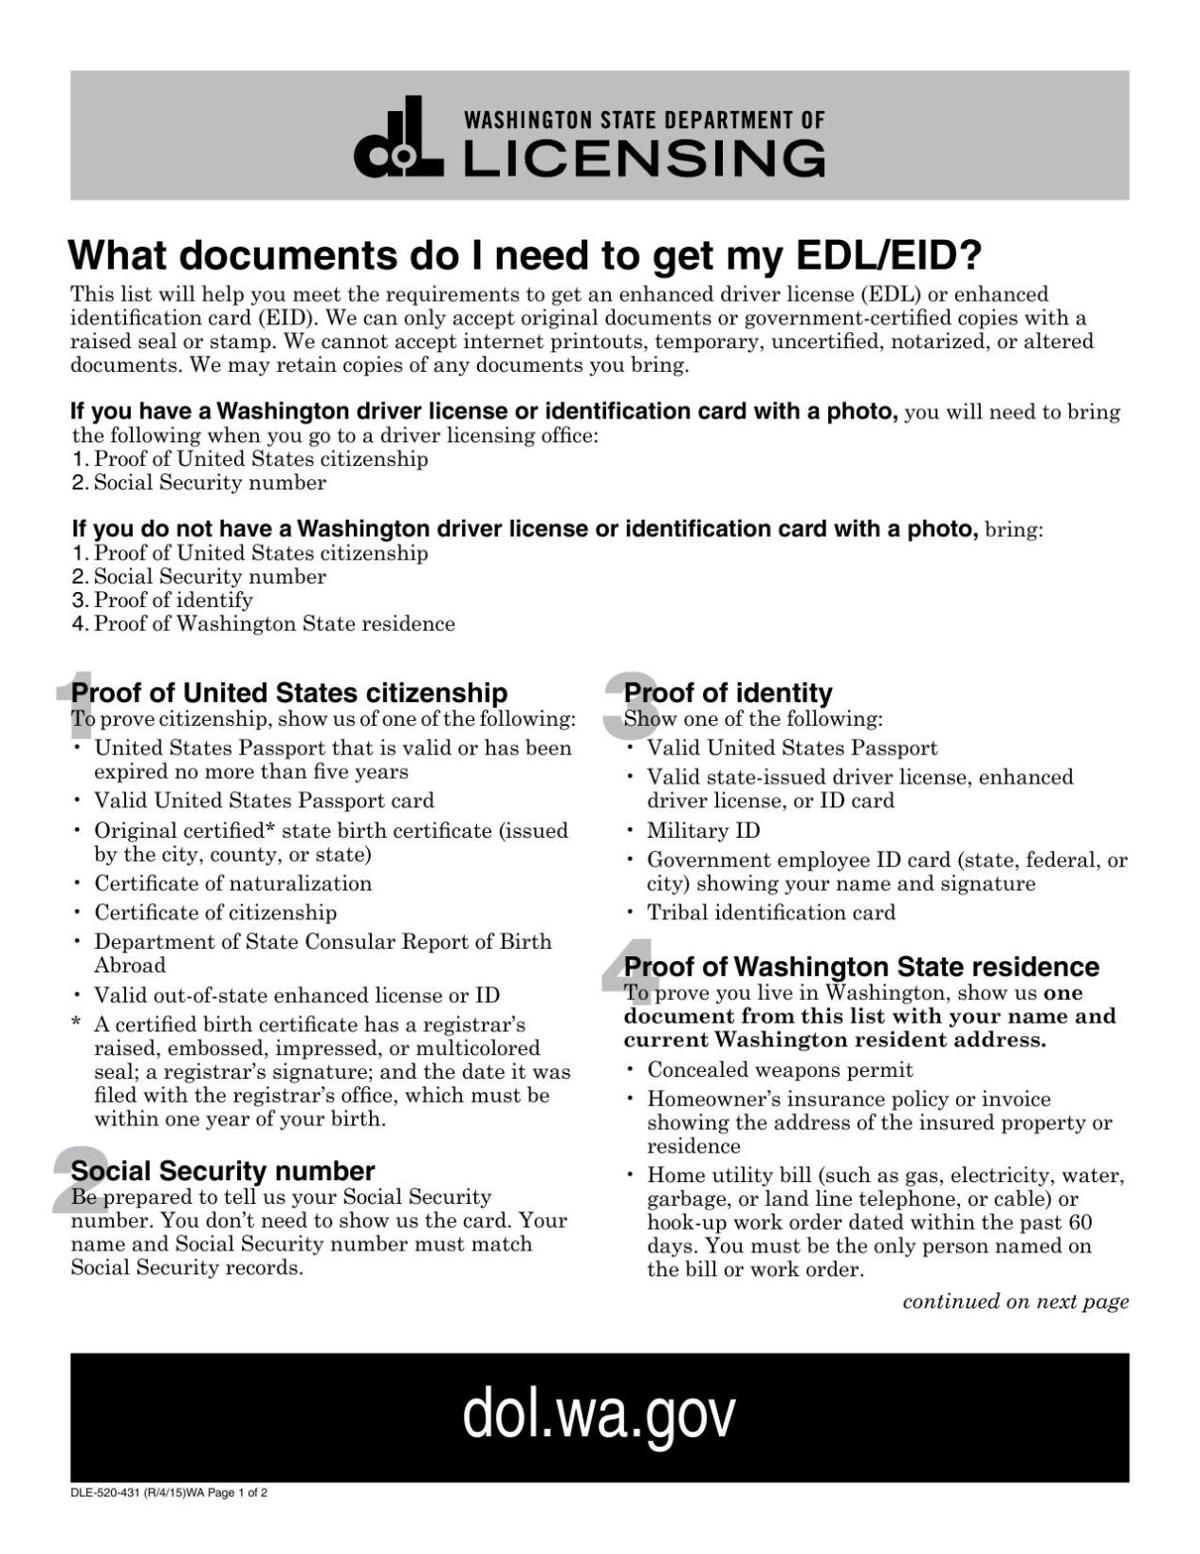 how to apply for wa state enhanced drivers license